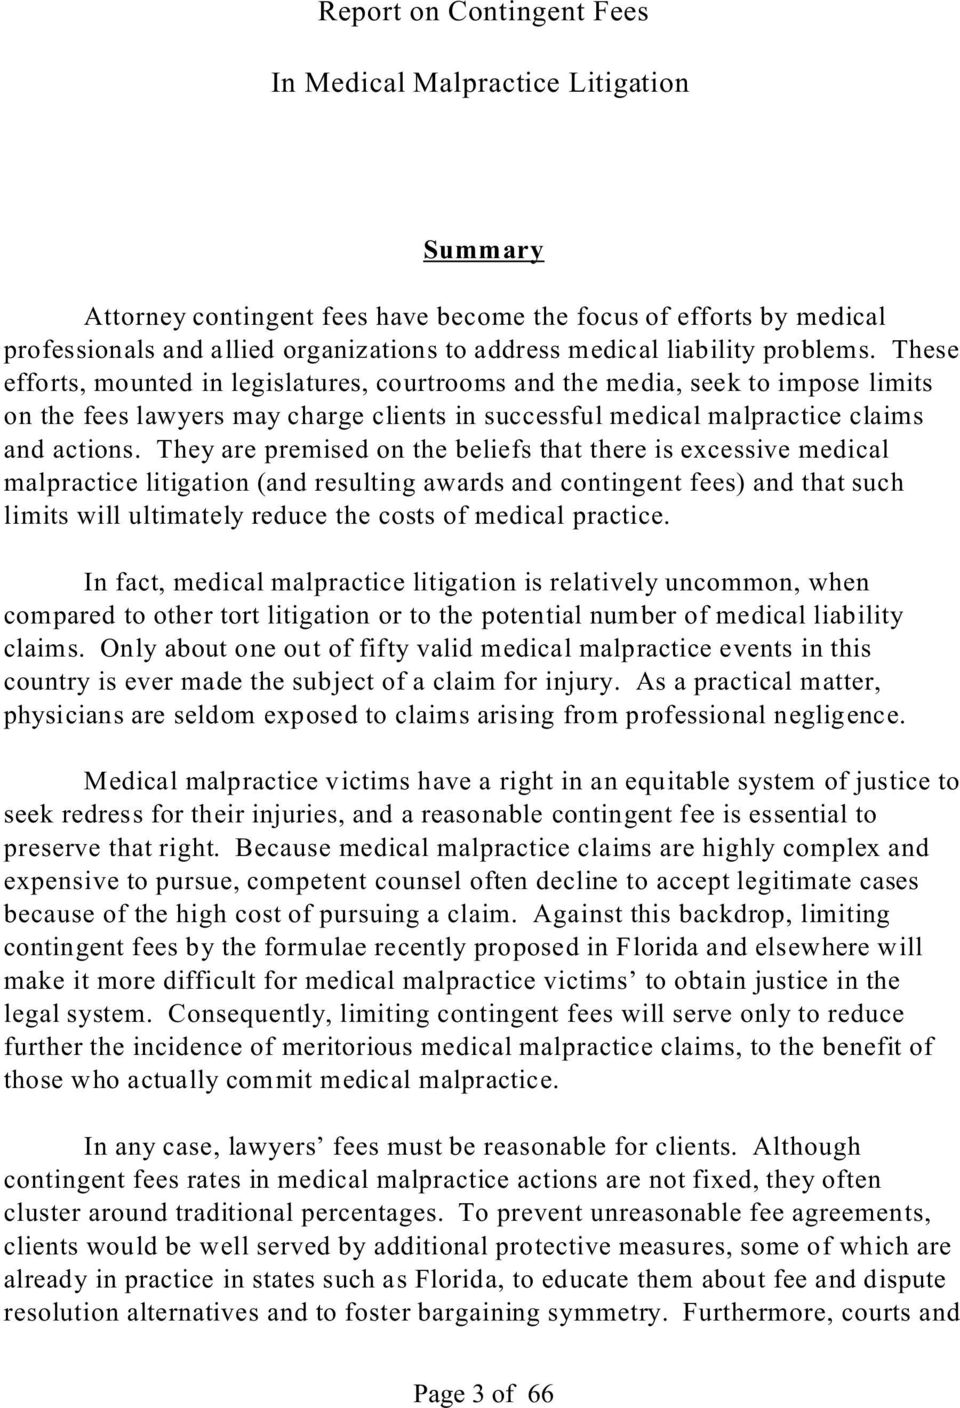 They are premised on the beliefs that there is excessive medical malpractice litigation (and resulting awards and contingent fees) and that such limits will ultimately reduce the costs of medical